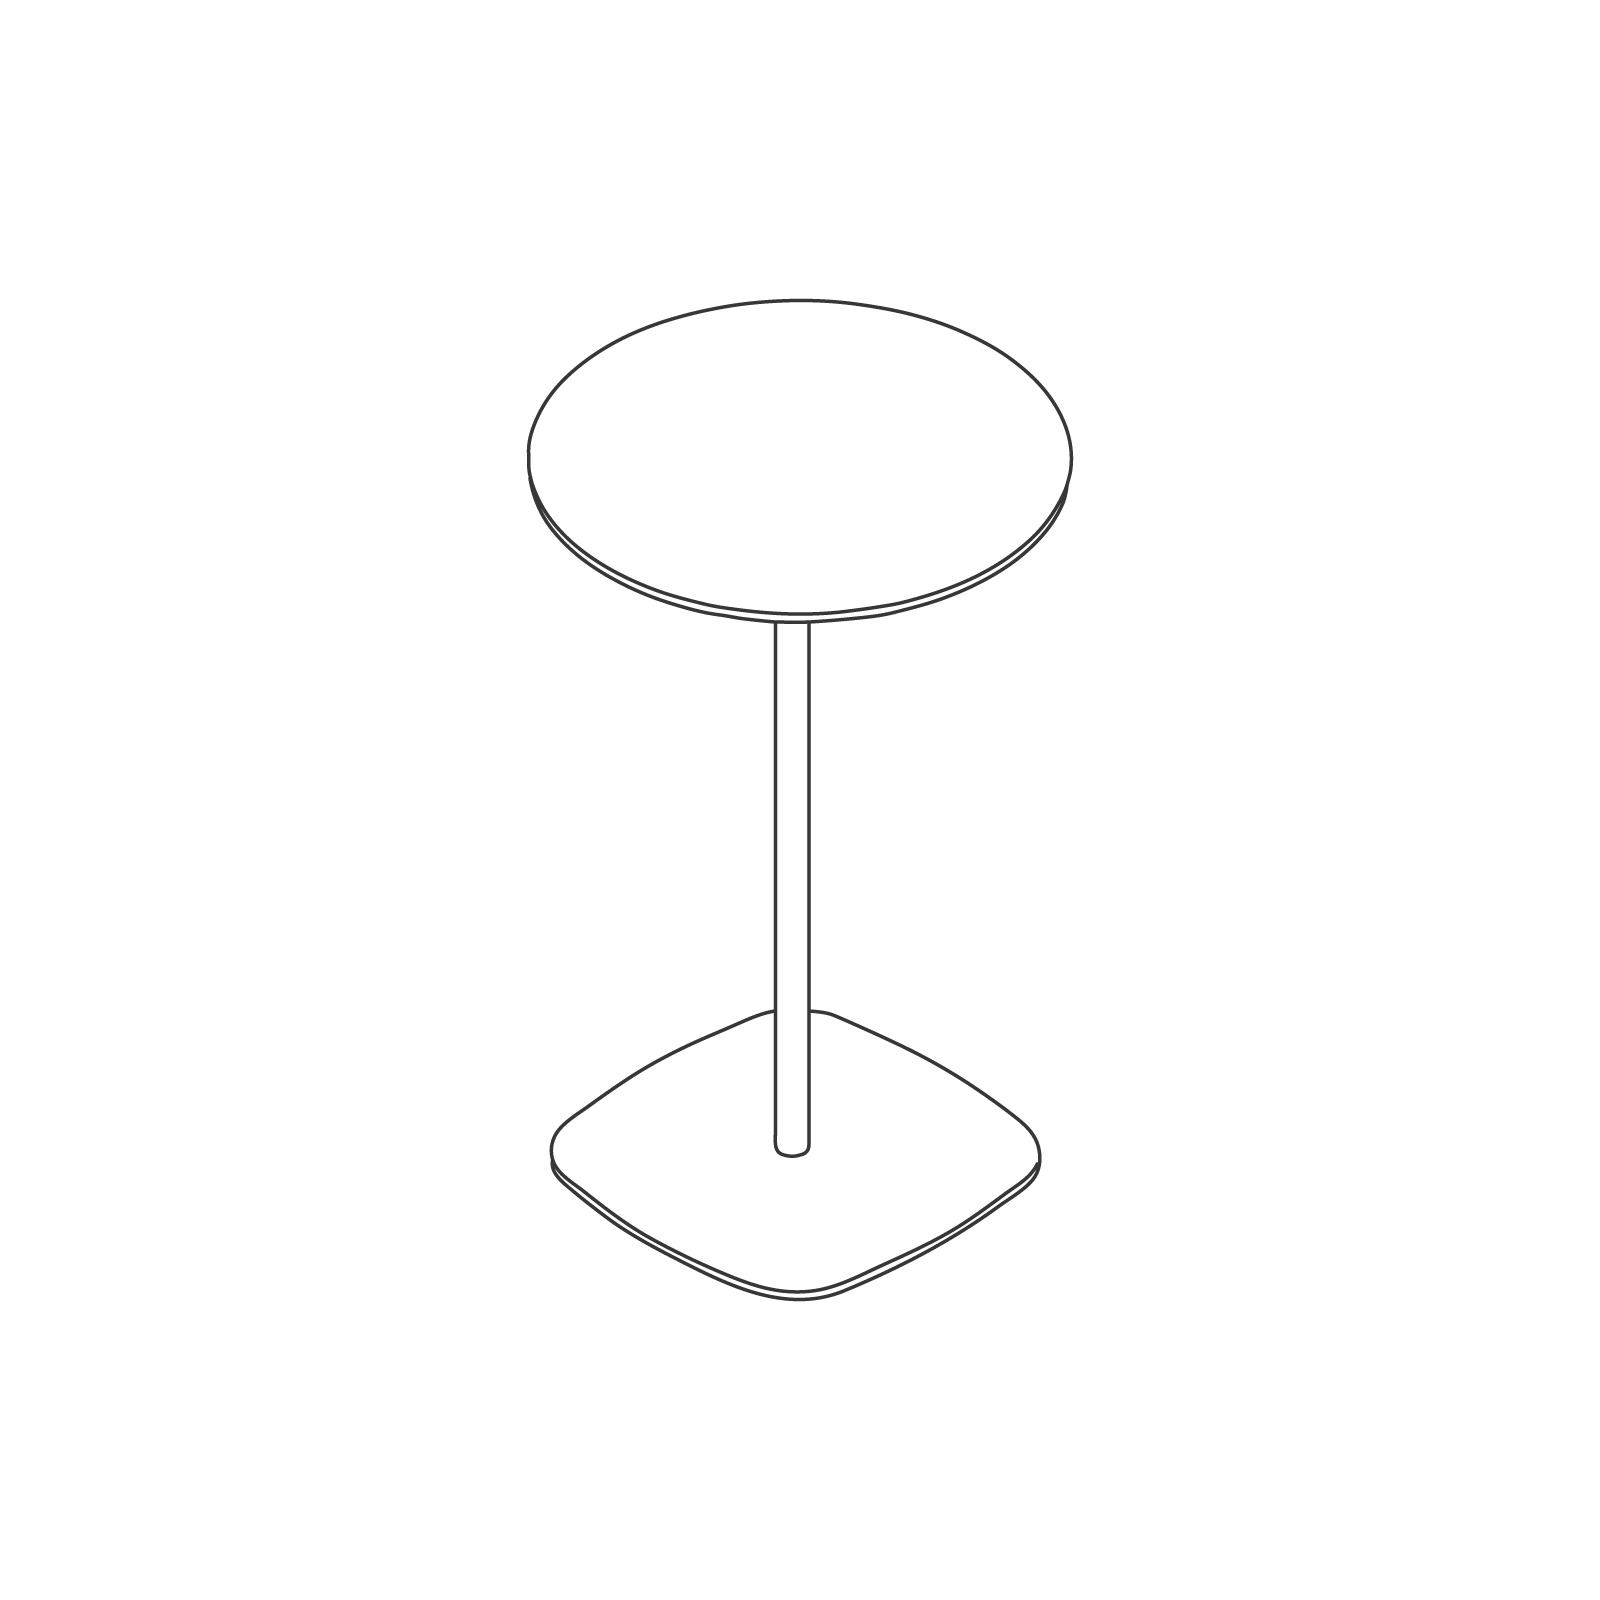 A line drawing of Ped Bar Height Table–Round.